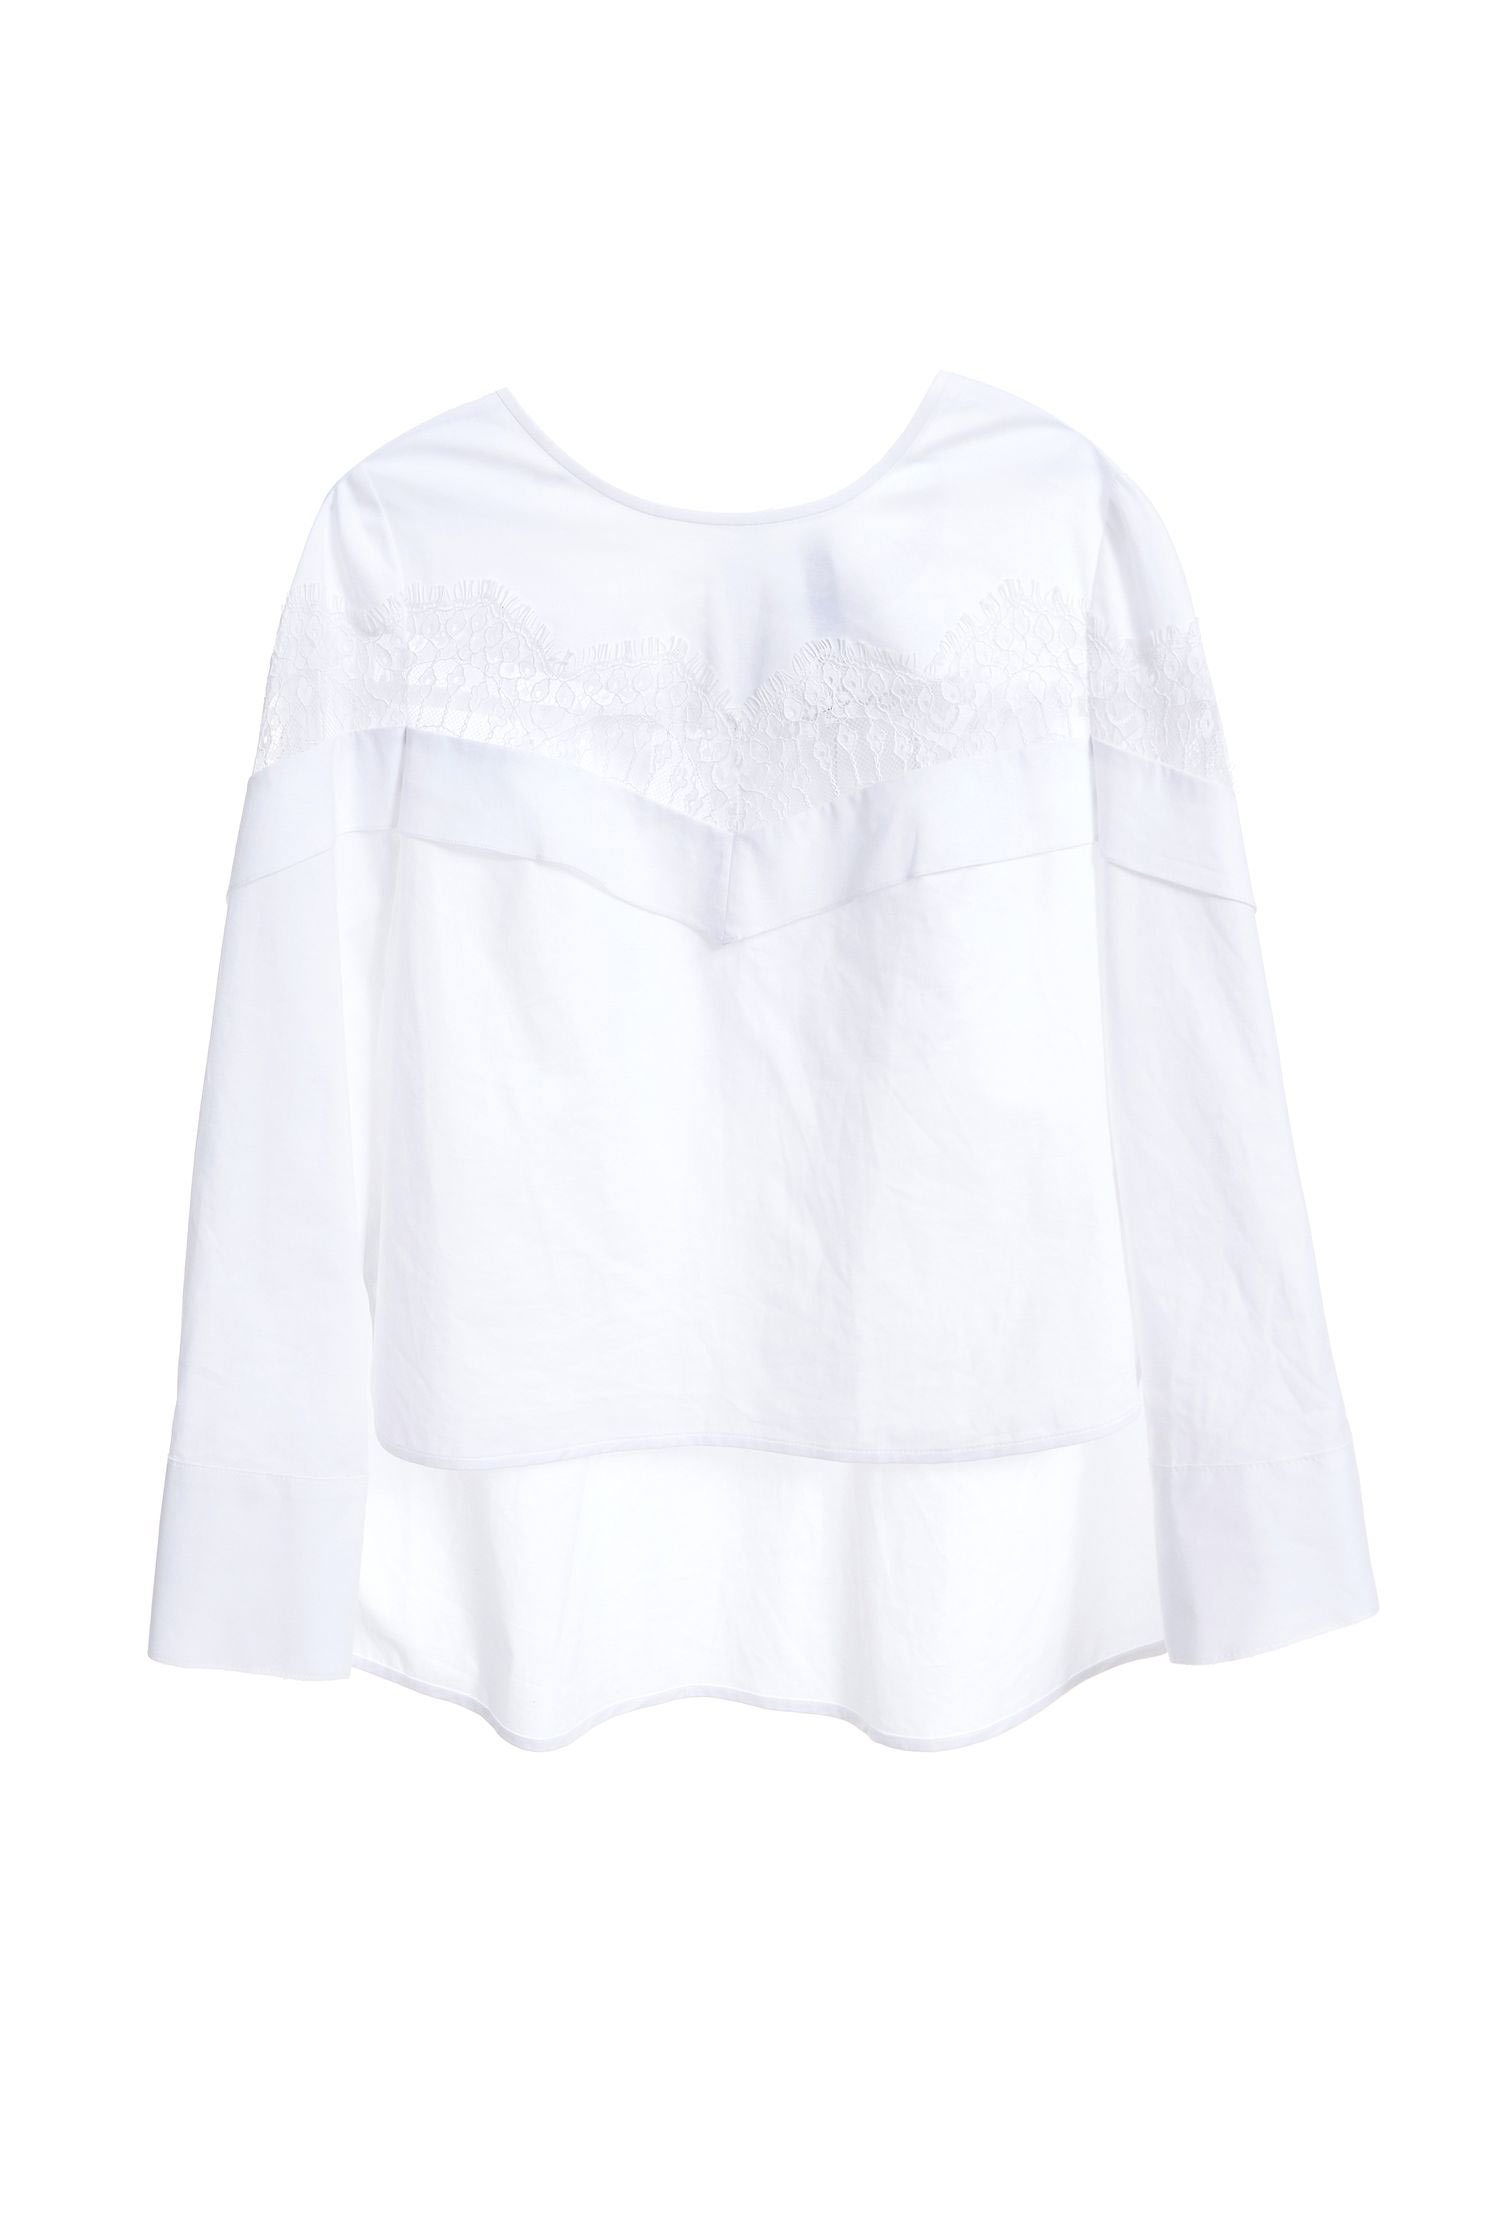 Lace ruffle shirt top,Top,白色上衣,簍空上衣,Cotton,Lace,Laced Top,Blouse,長袖上衣